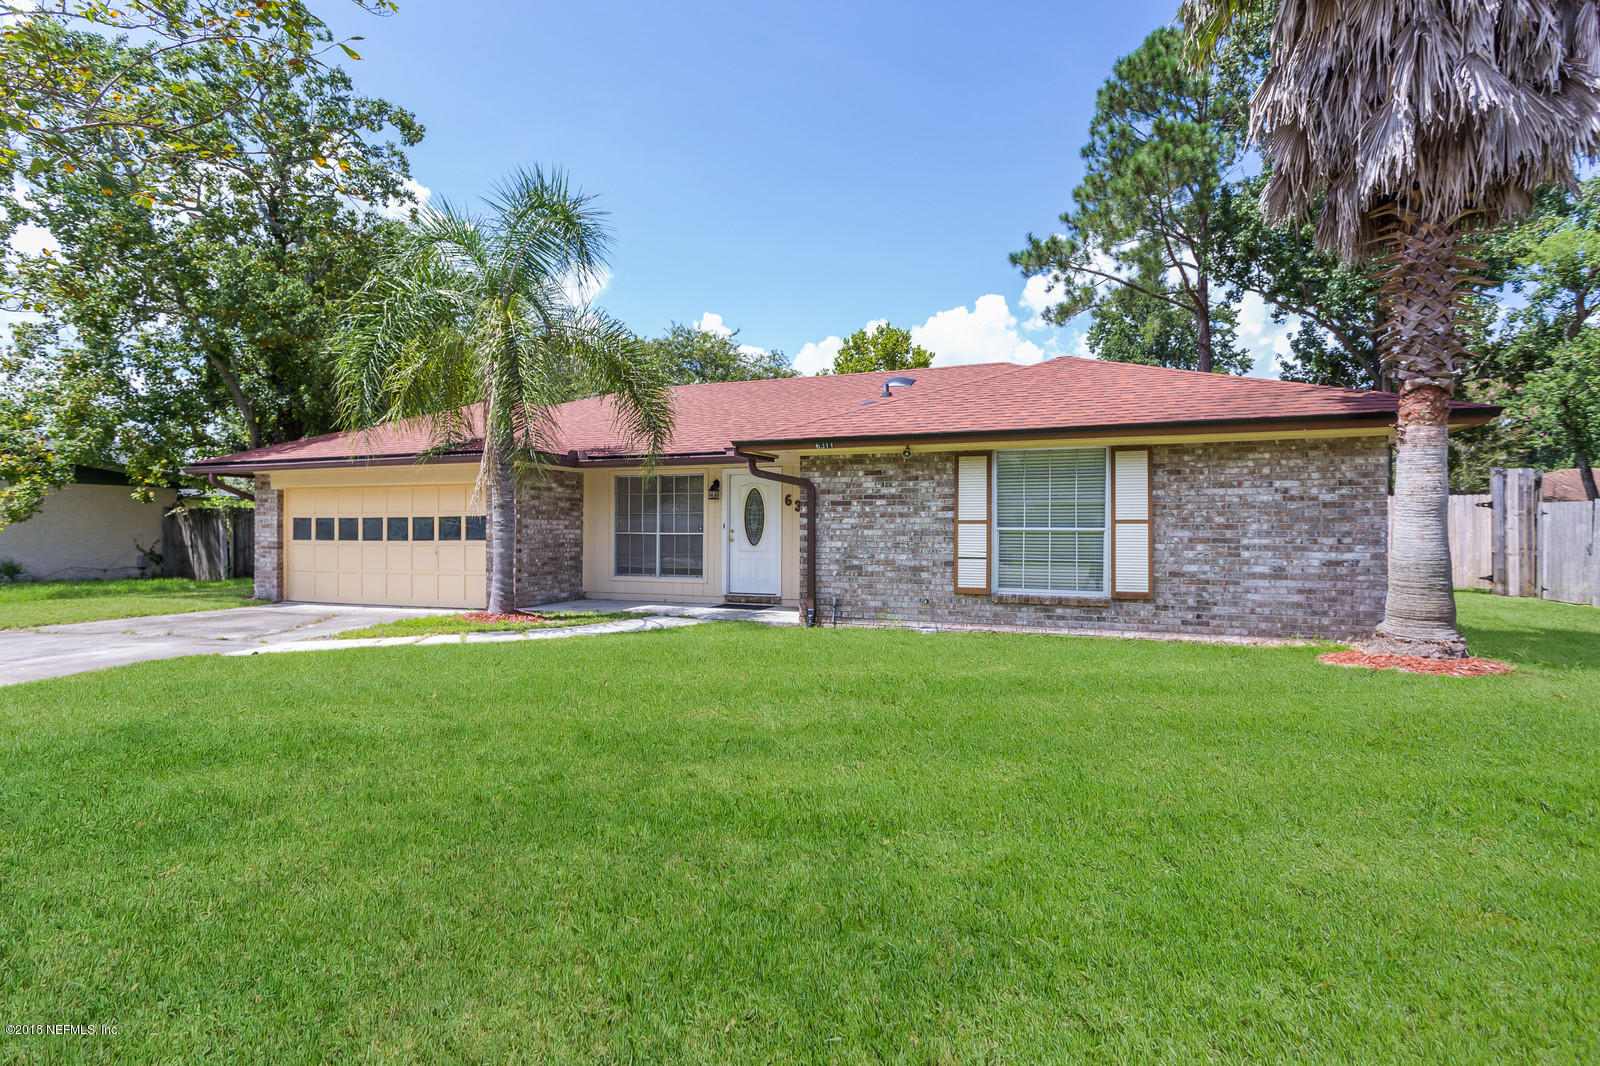 6311 CURLEY, JACKSONVILLE, FLORIDA 32216, 3 Bedrooms Bedrooms, ,2 BathroomsBathrooms,Residential - single family,For sale,CURLEY,952210